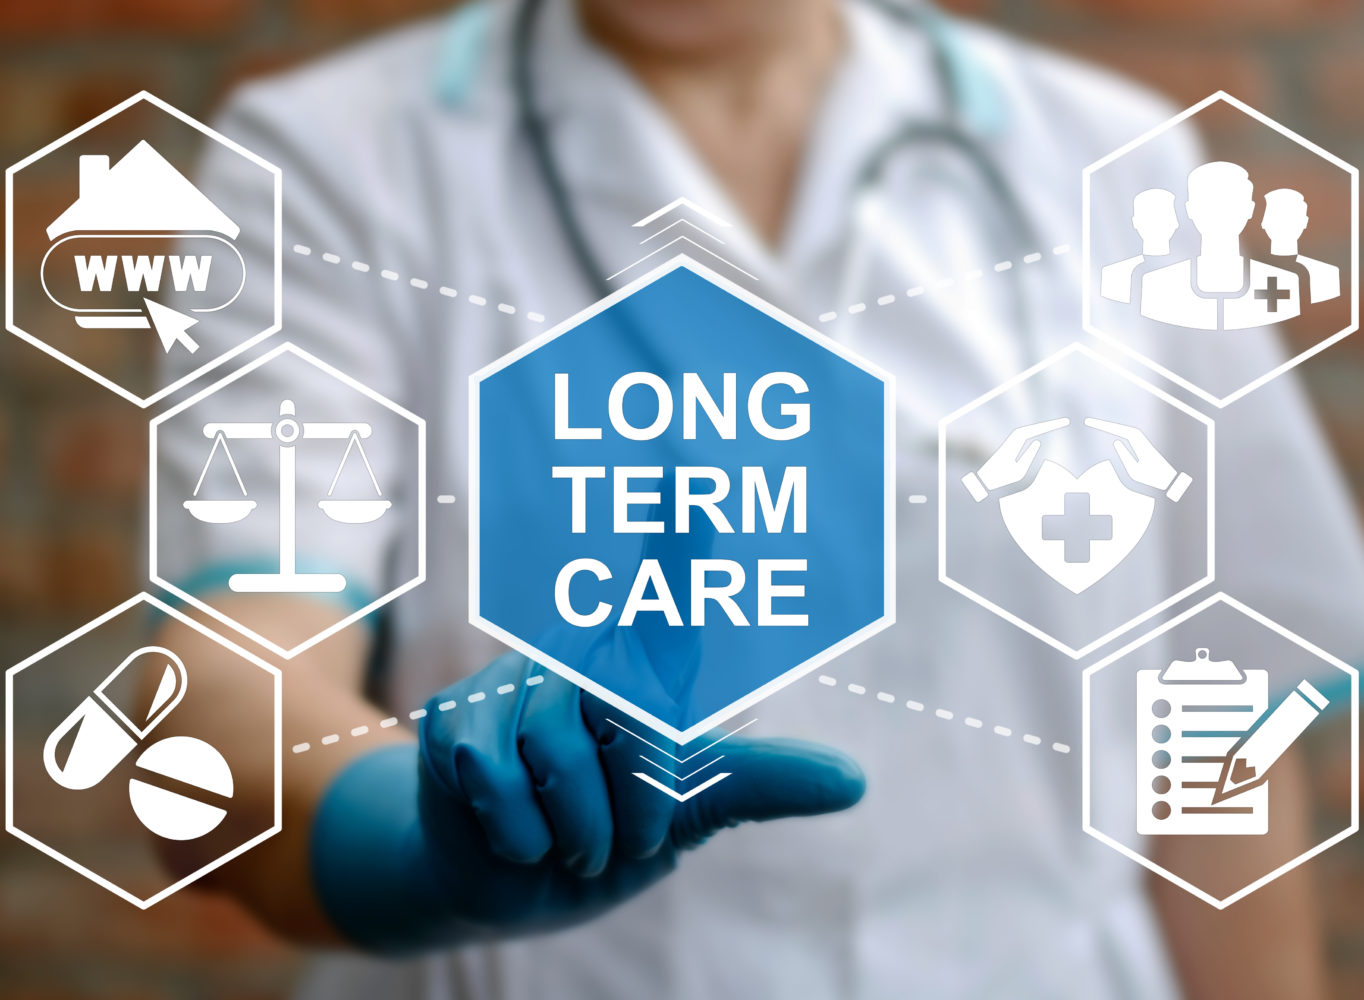 Long Term Care - Do You Think You Don't Need It?